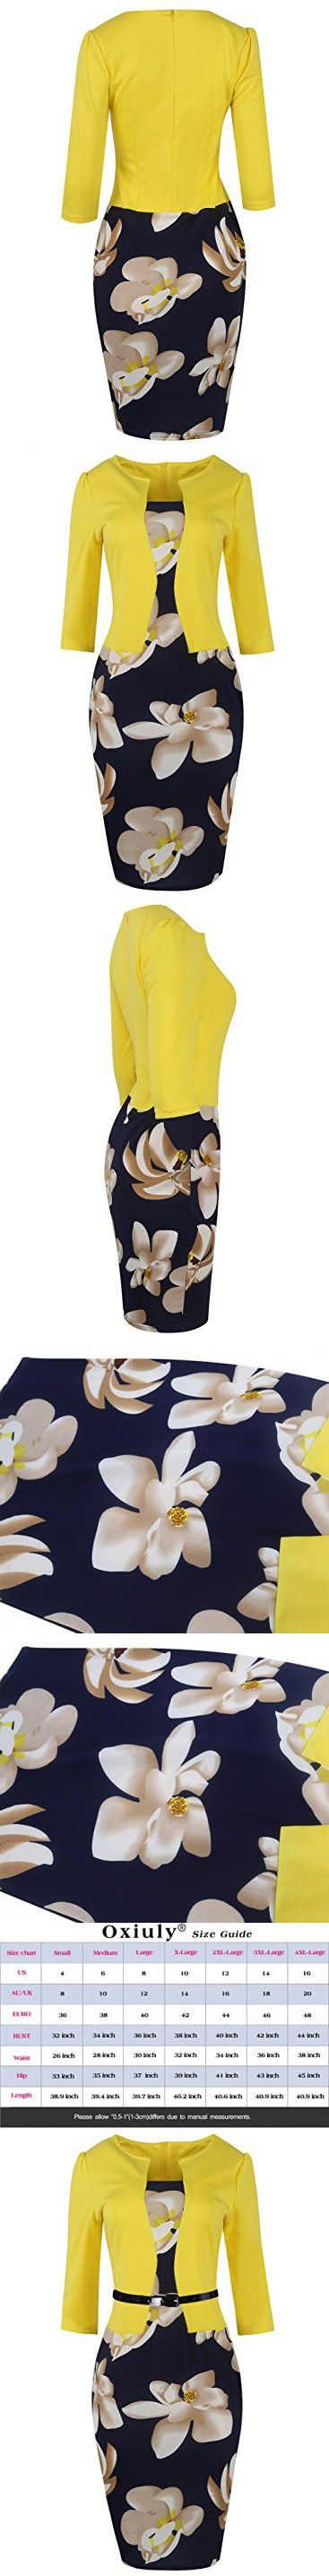 Oxiuly Women's Patchwork Stretch Foral Print Optical Illusion Formal Dress OX166 (M, Yellow + White Flower 3/4 Sleeve)